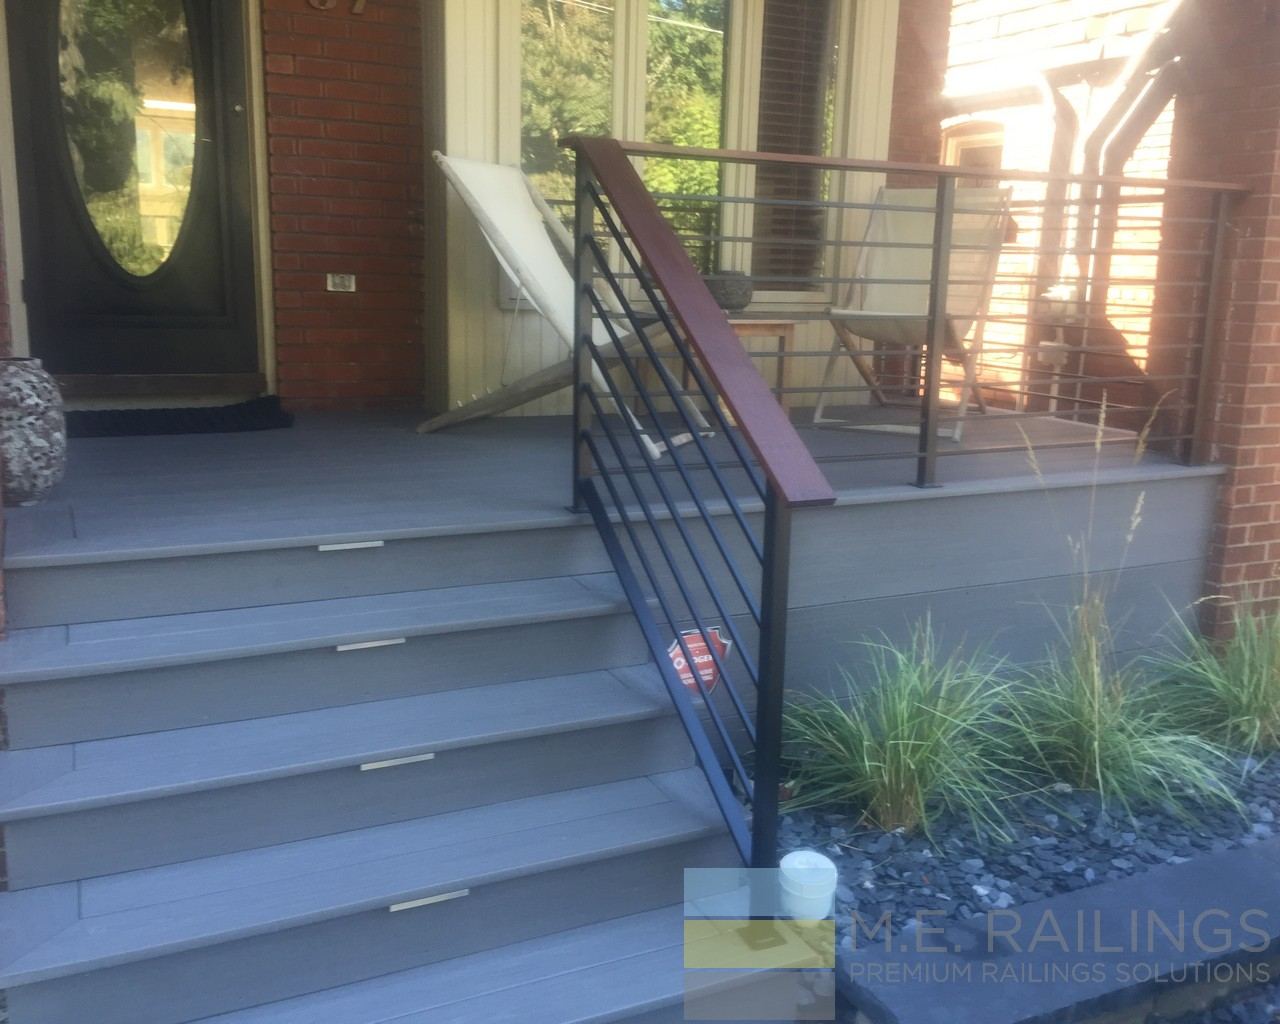 Wrought Iron Railings With Ipe Rails Toronto Railings Provides Exterior Interior And Stairway